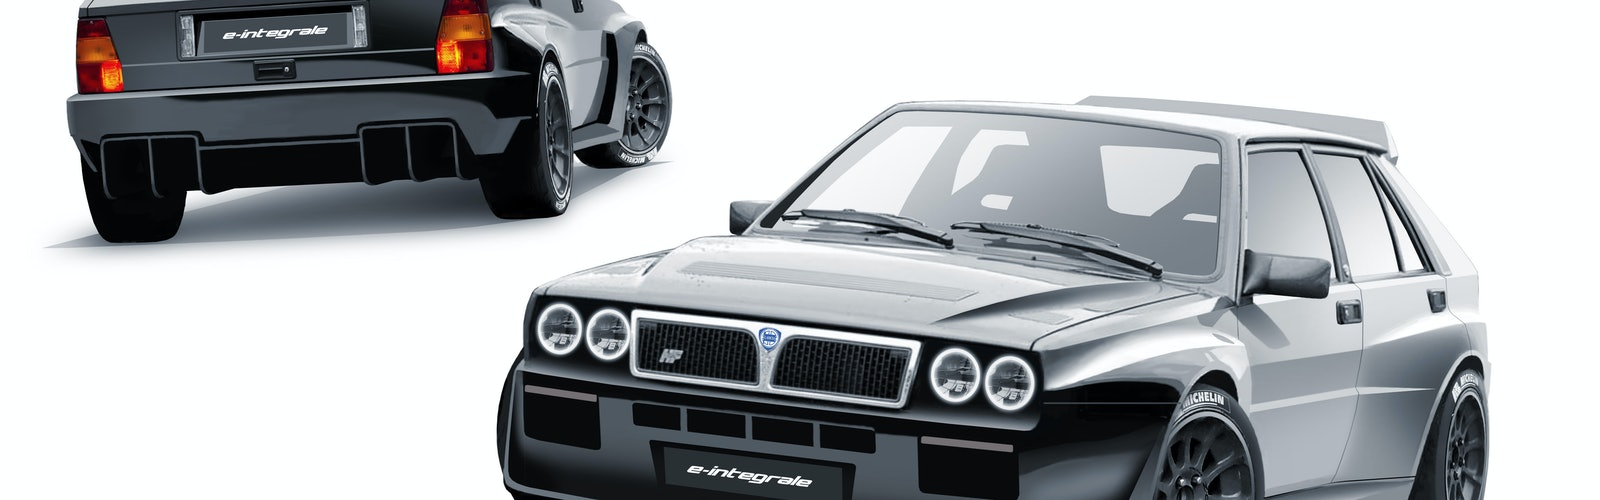 integrale retrofit GCK michelin